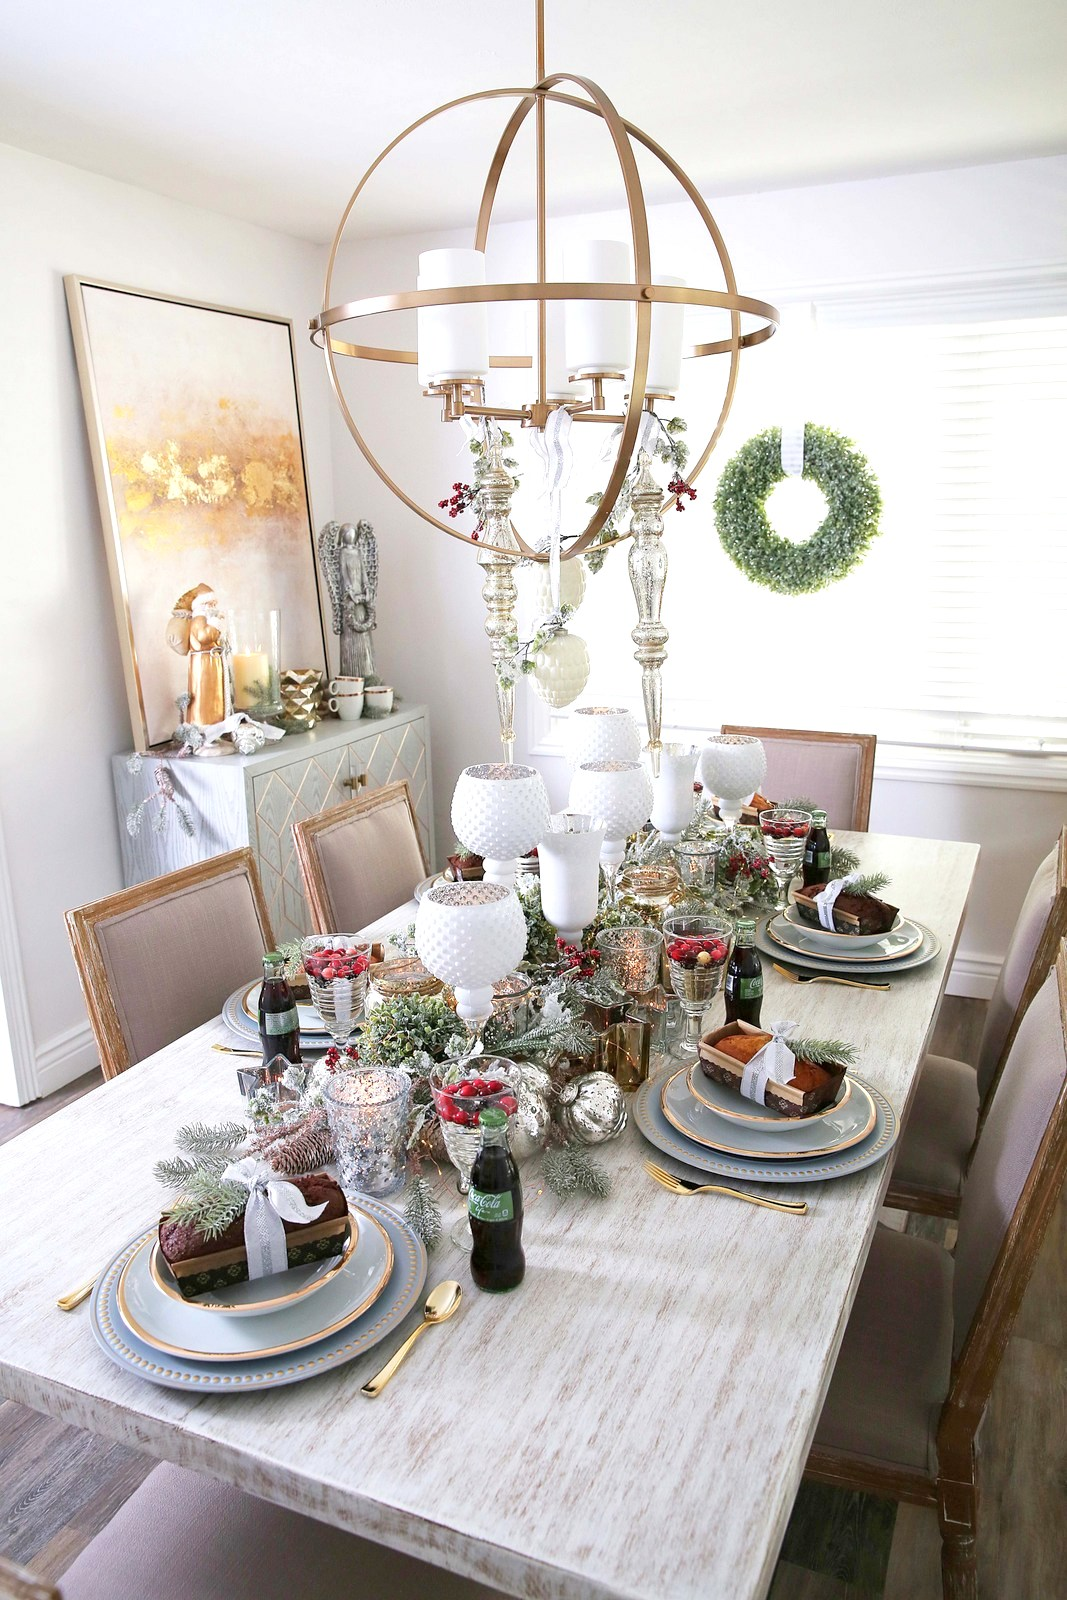 Our New Home Big Reveal: Dining Room Holiday Decor Ideas by Utah style blogger Sandy A La Mode